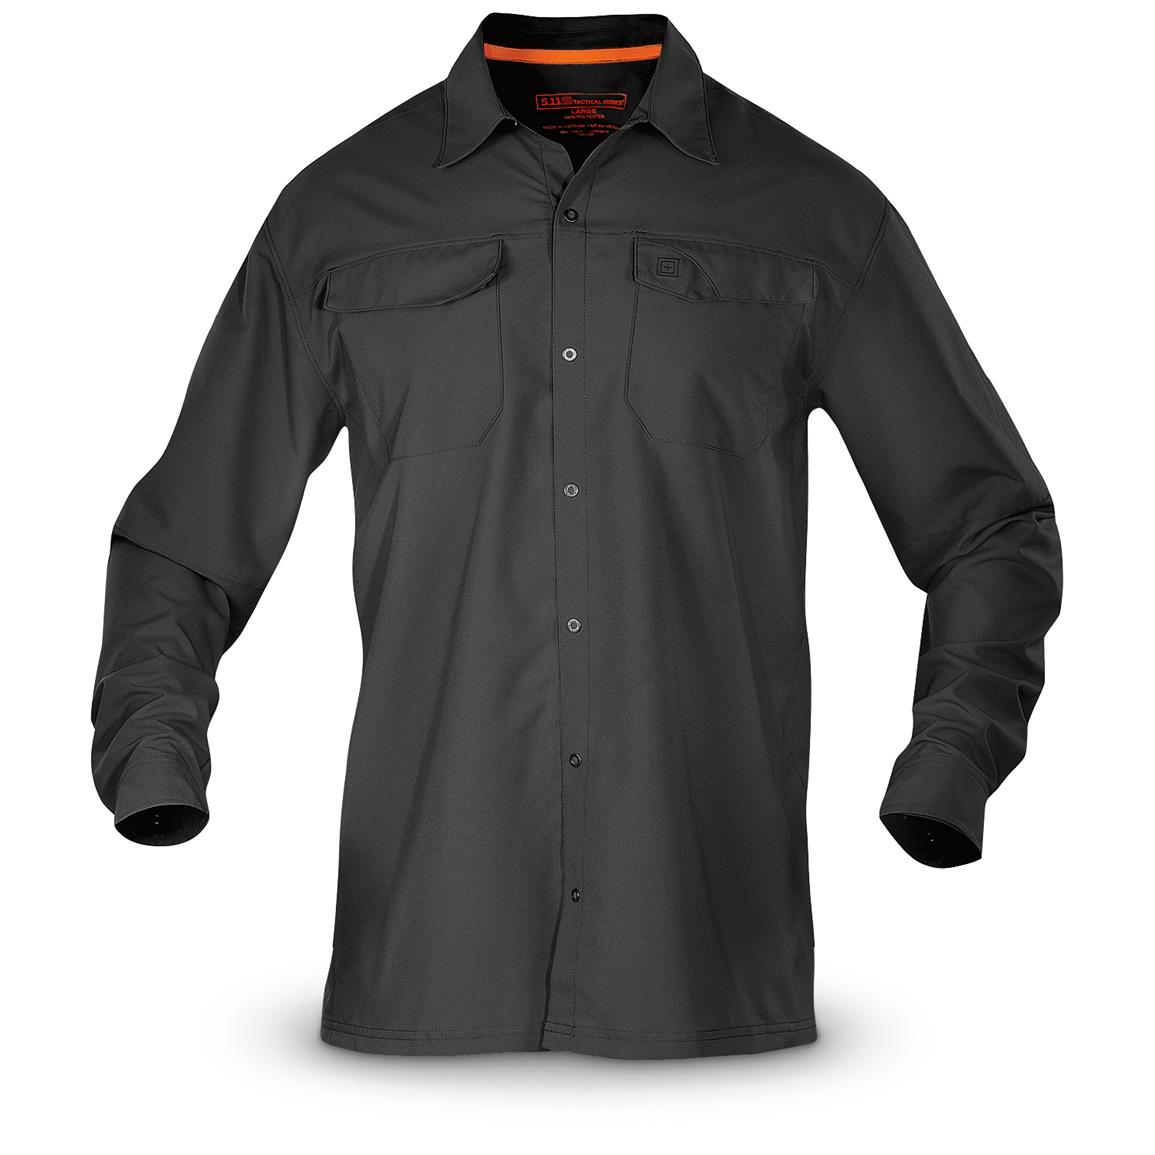 5.11 Tactical Men's Freedom Flex Long Sleeve Shirt, Black